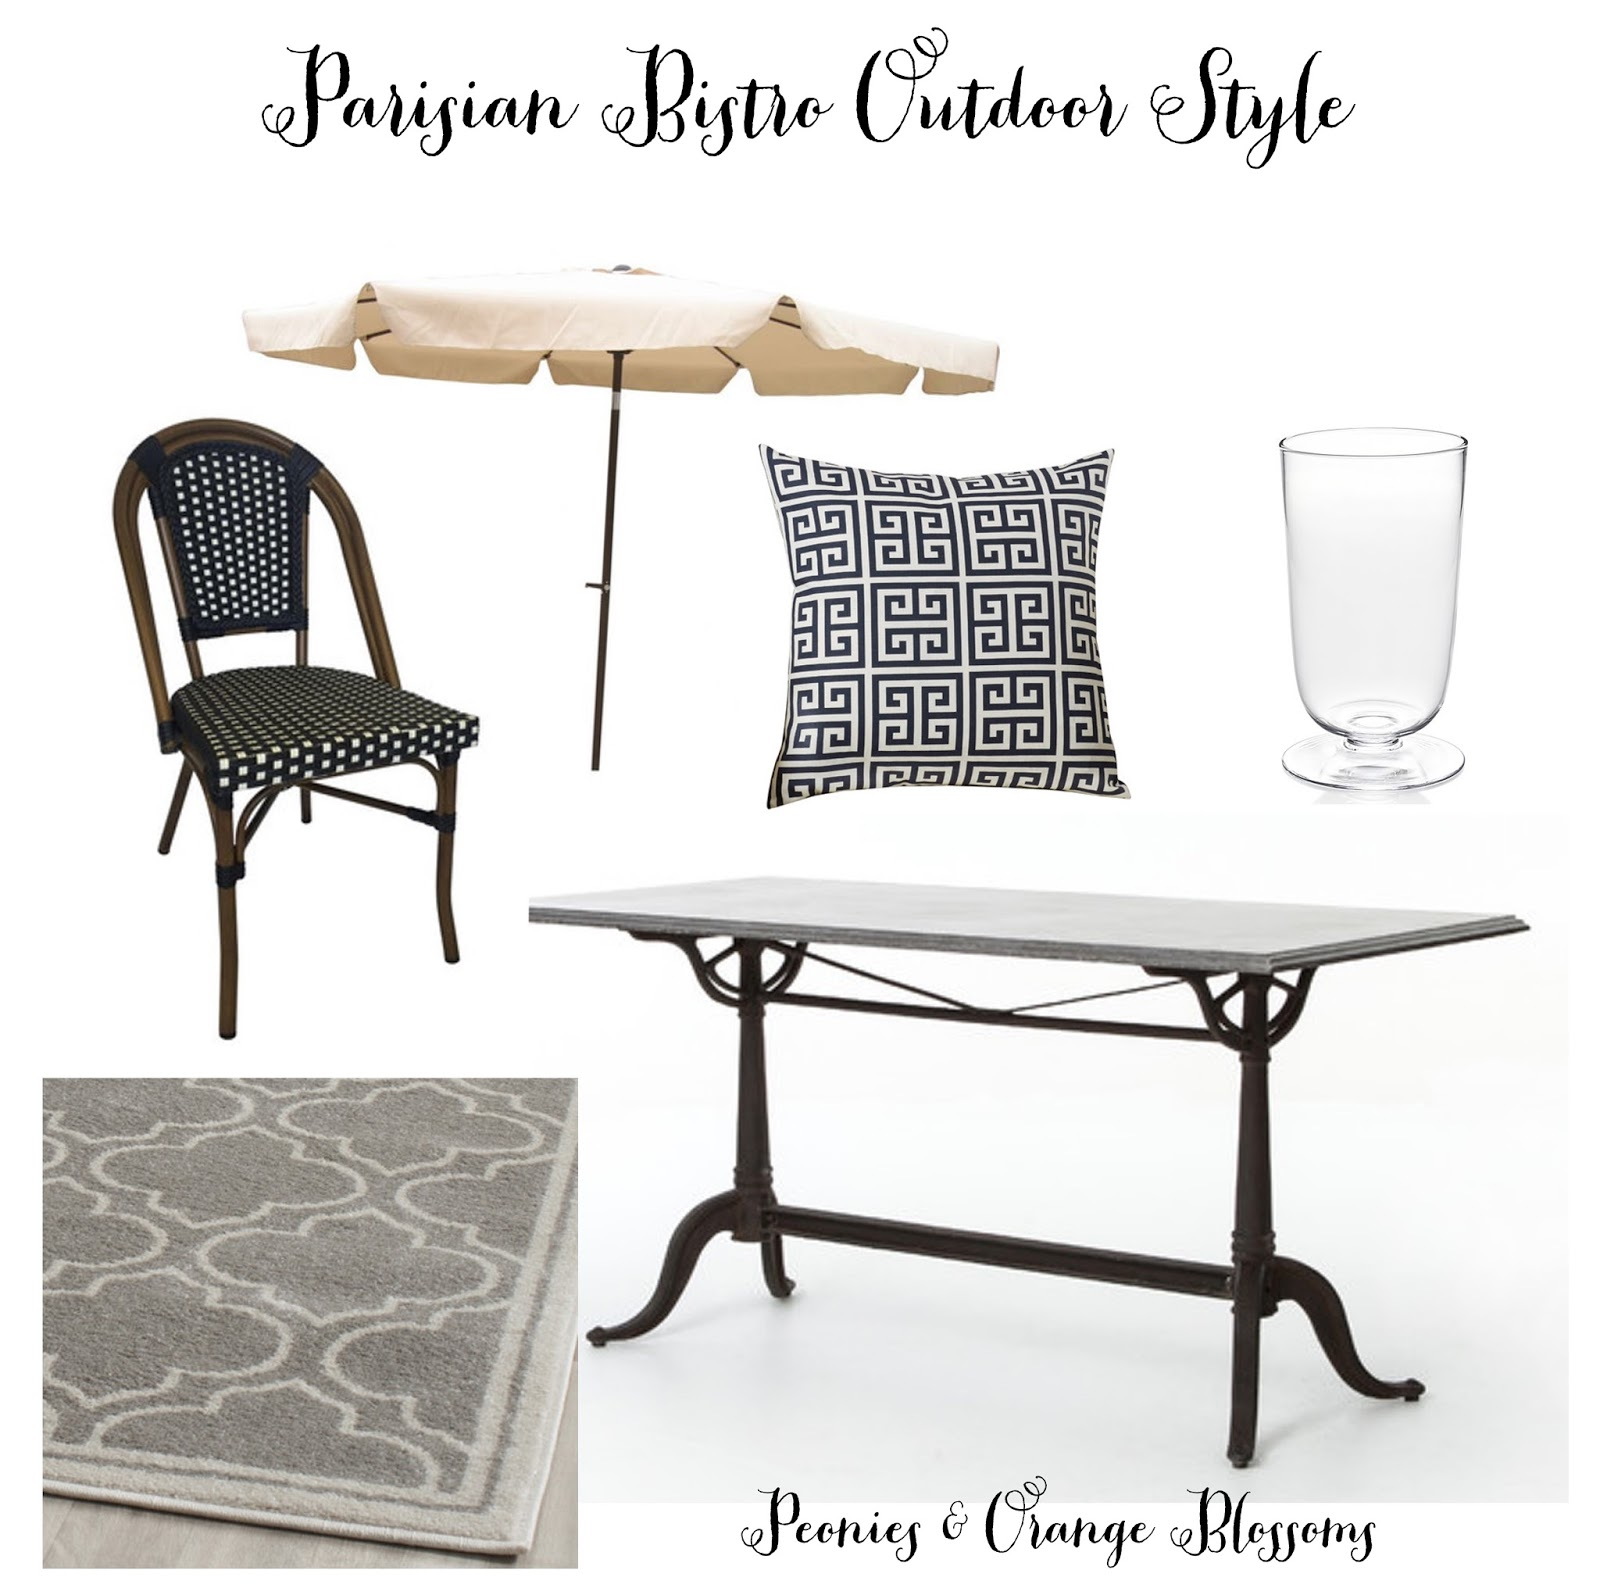 outdoor french bistro style for less petite haus